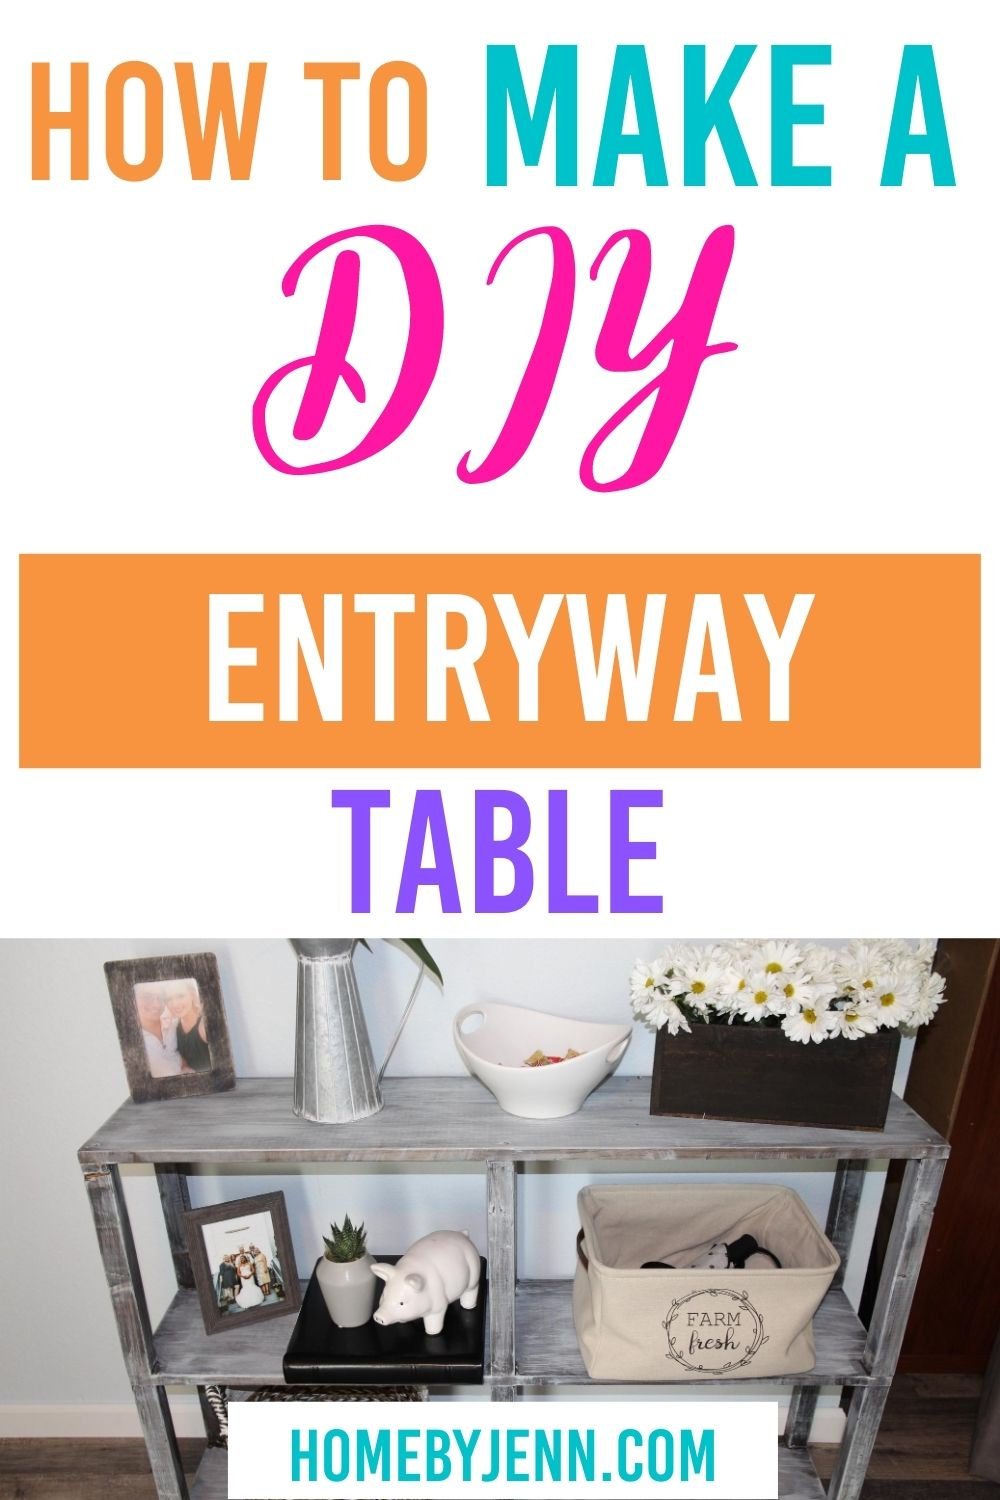 entryway table via @homebyjenn